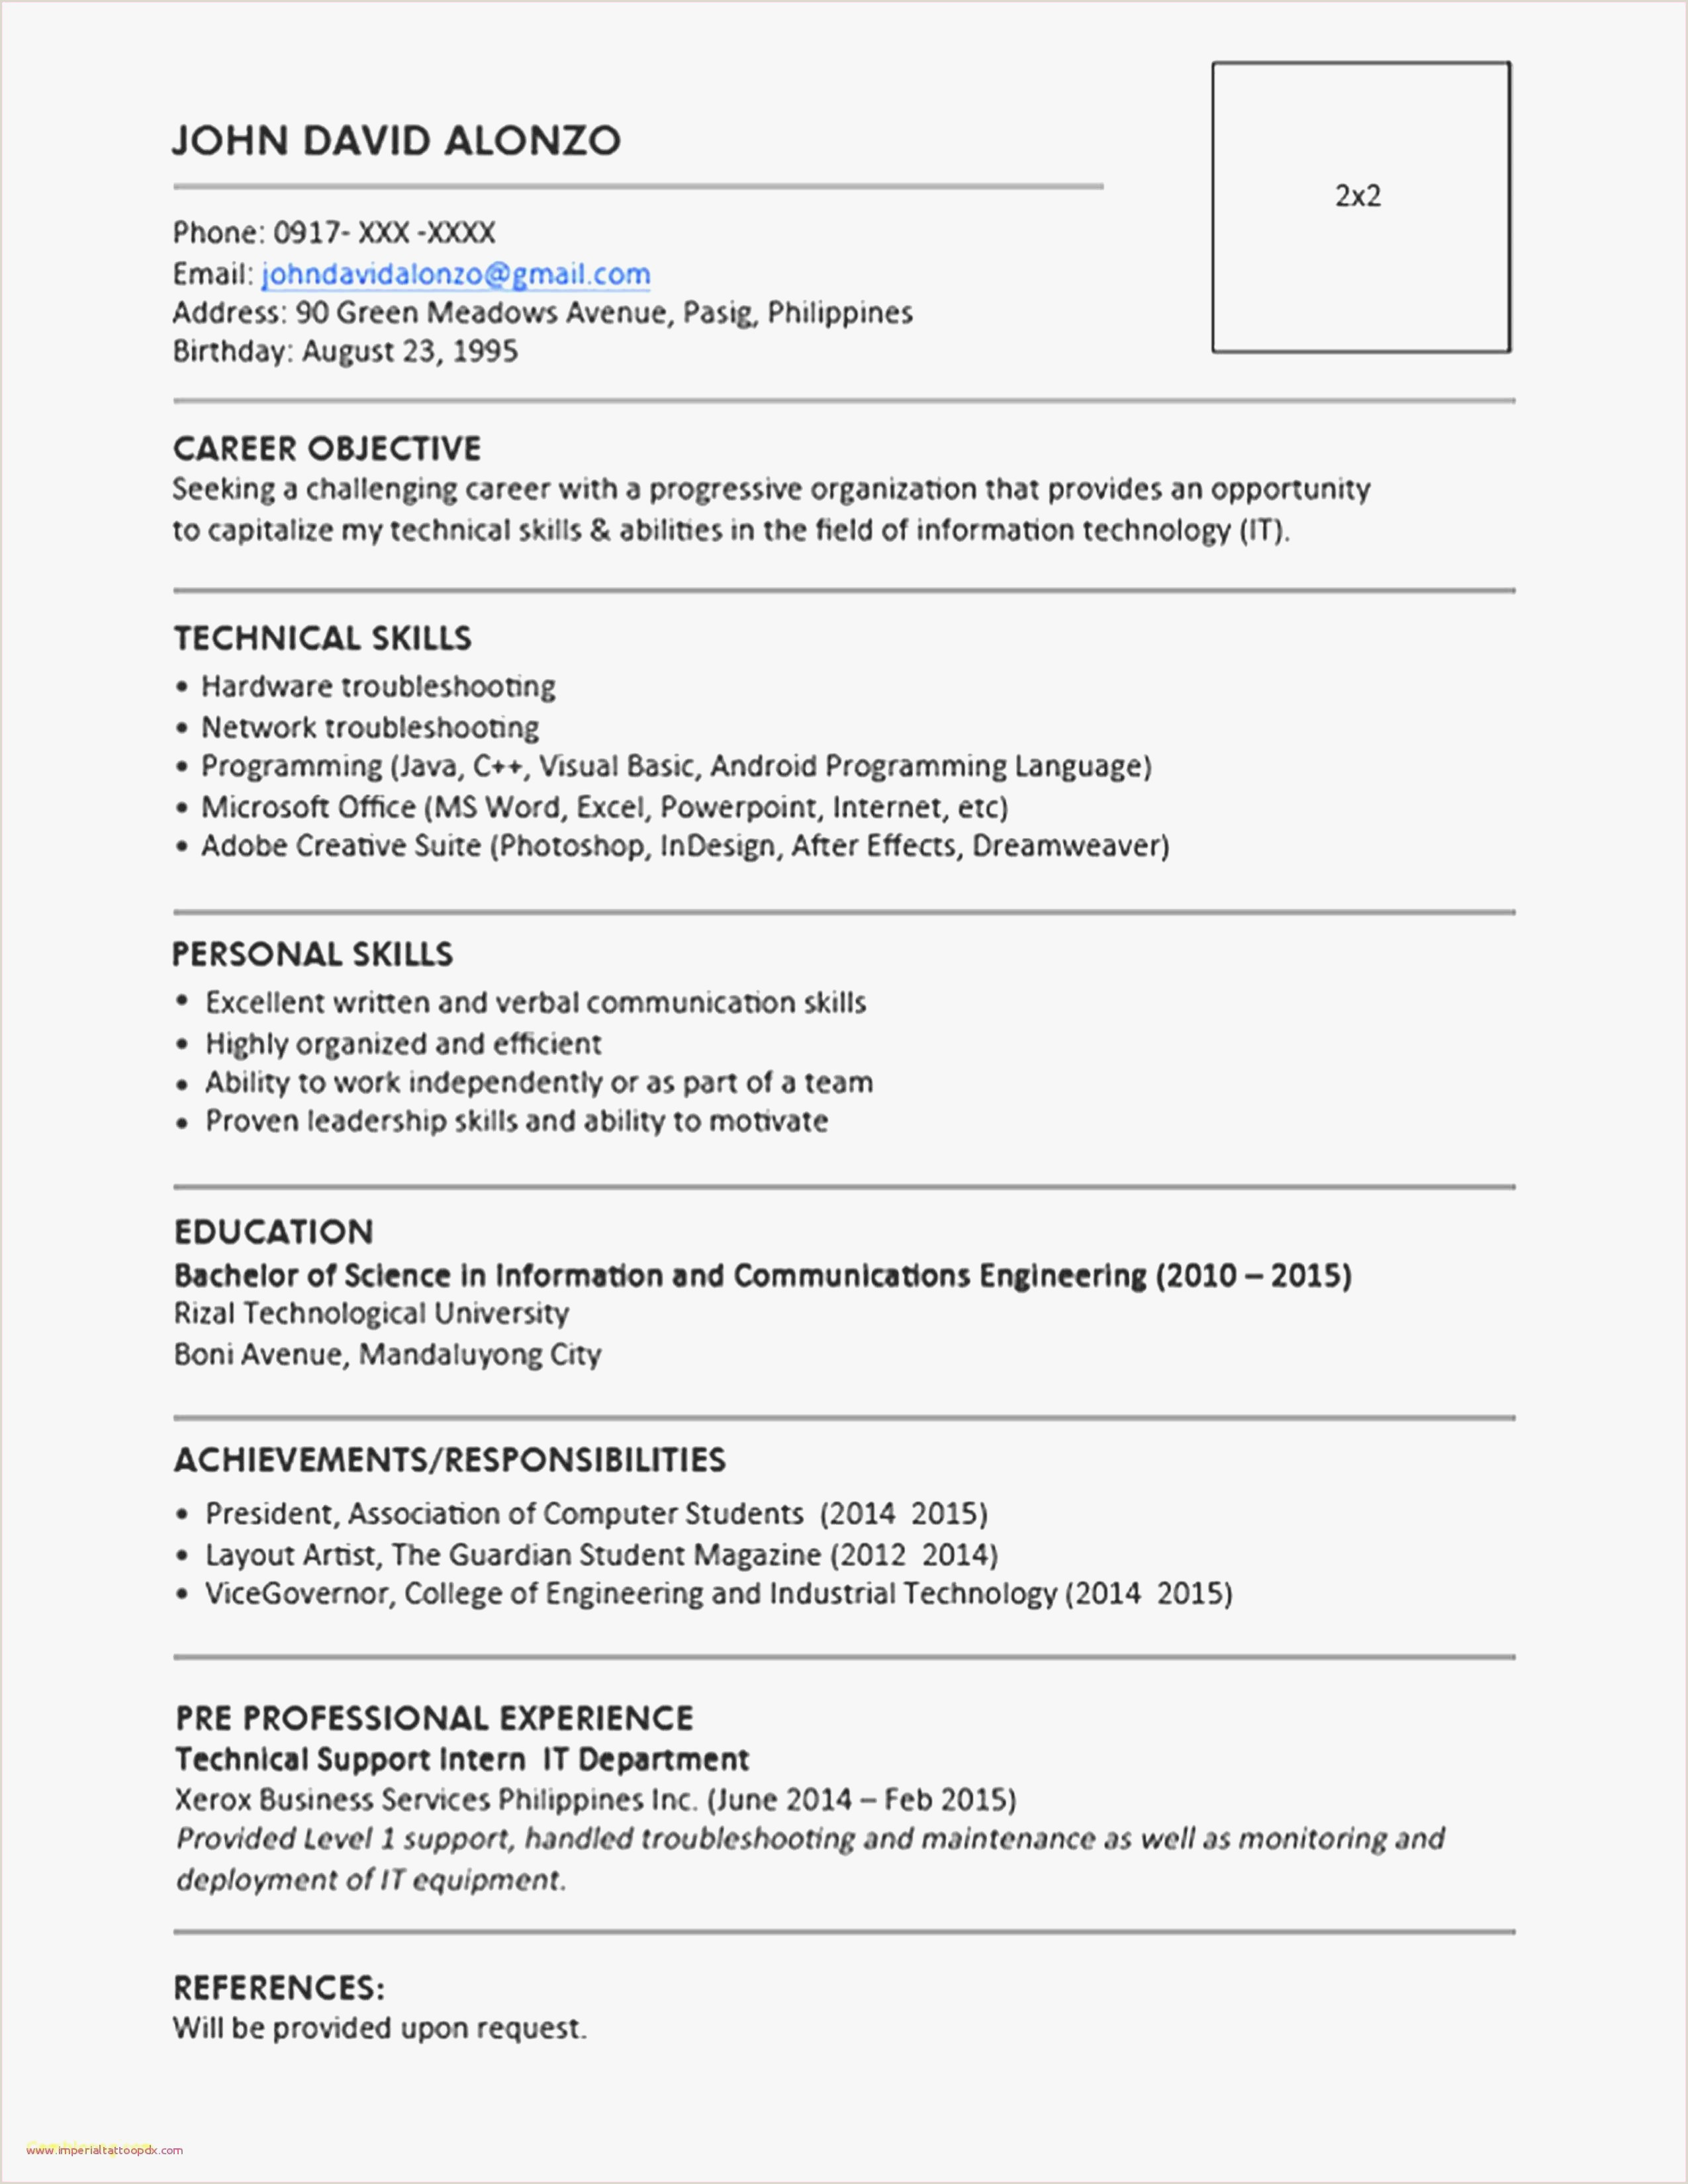 Professional Cv Template Download Word Collage Examples Layouts Great Cv Layout Template Word New